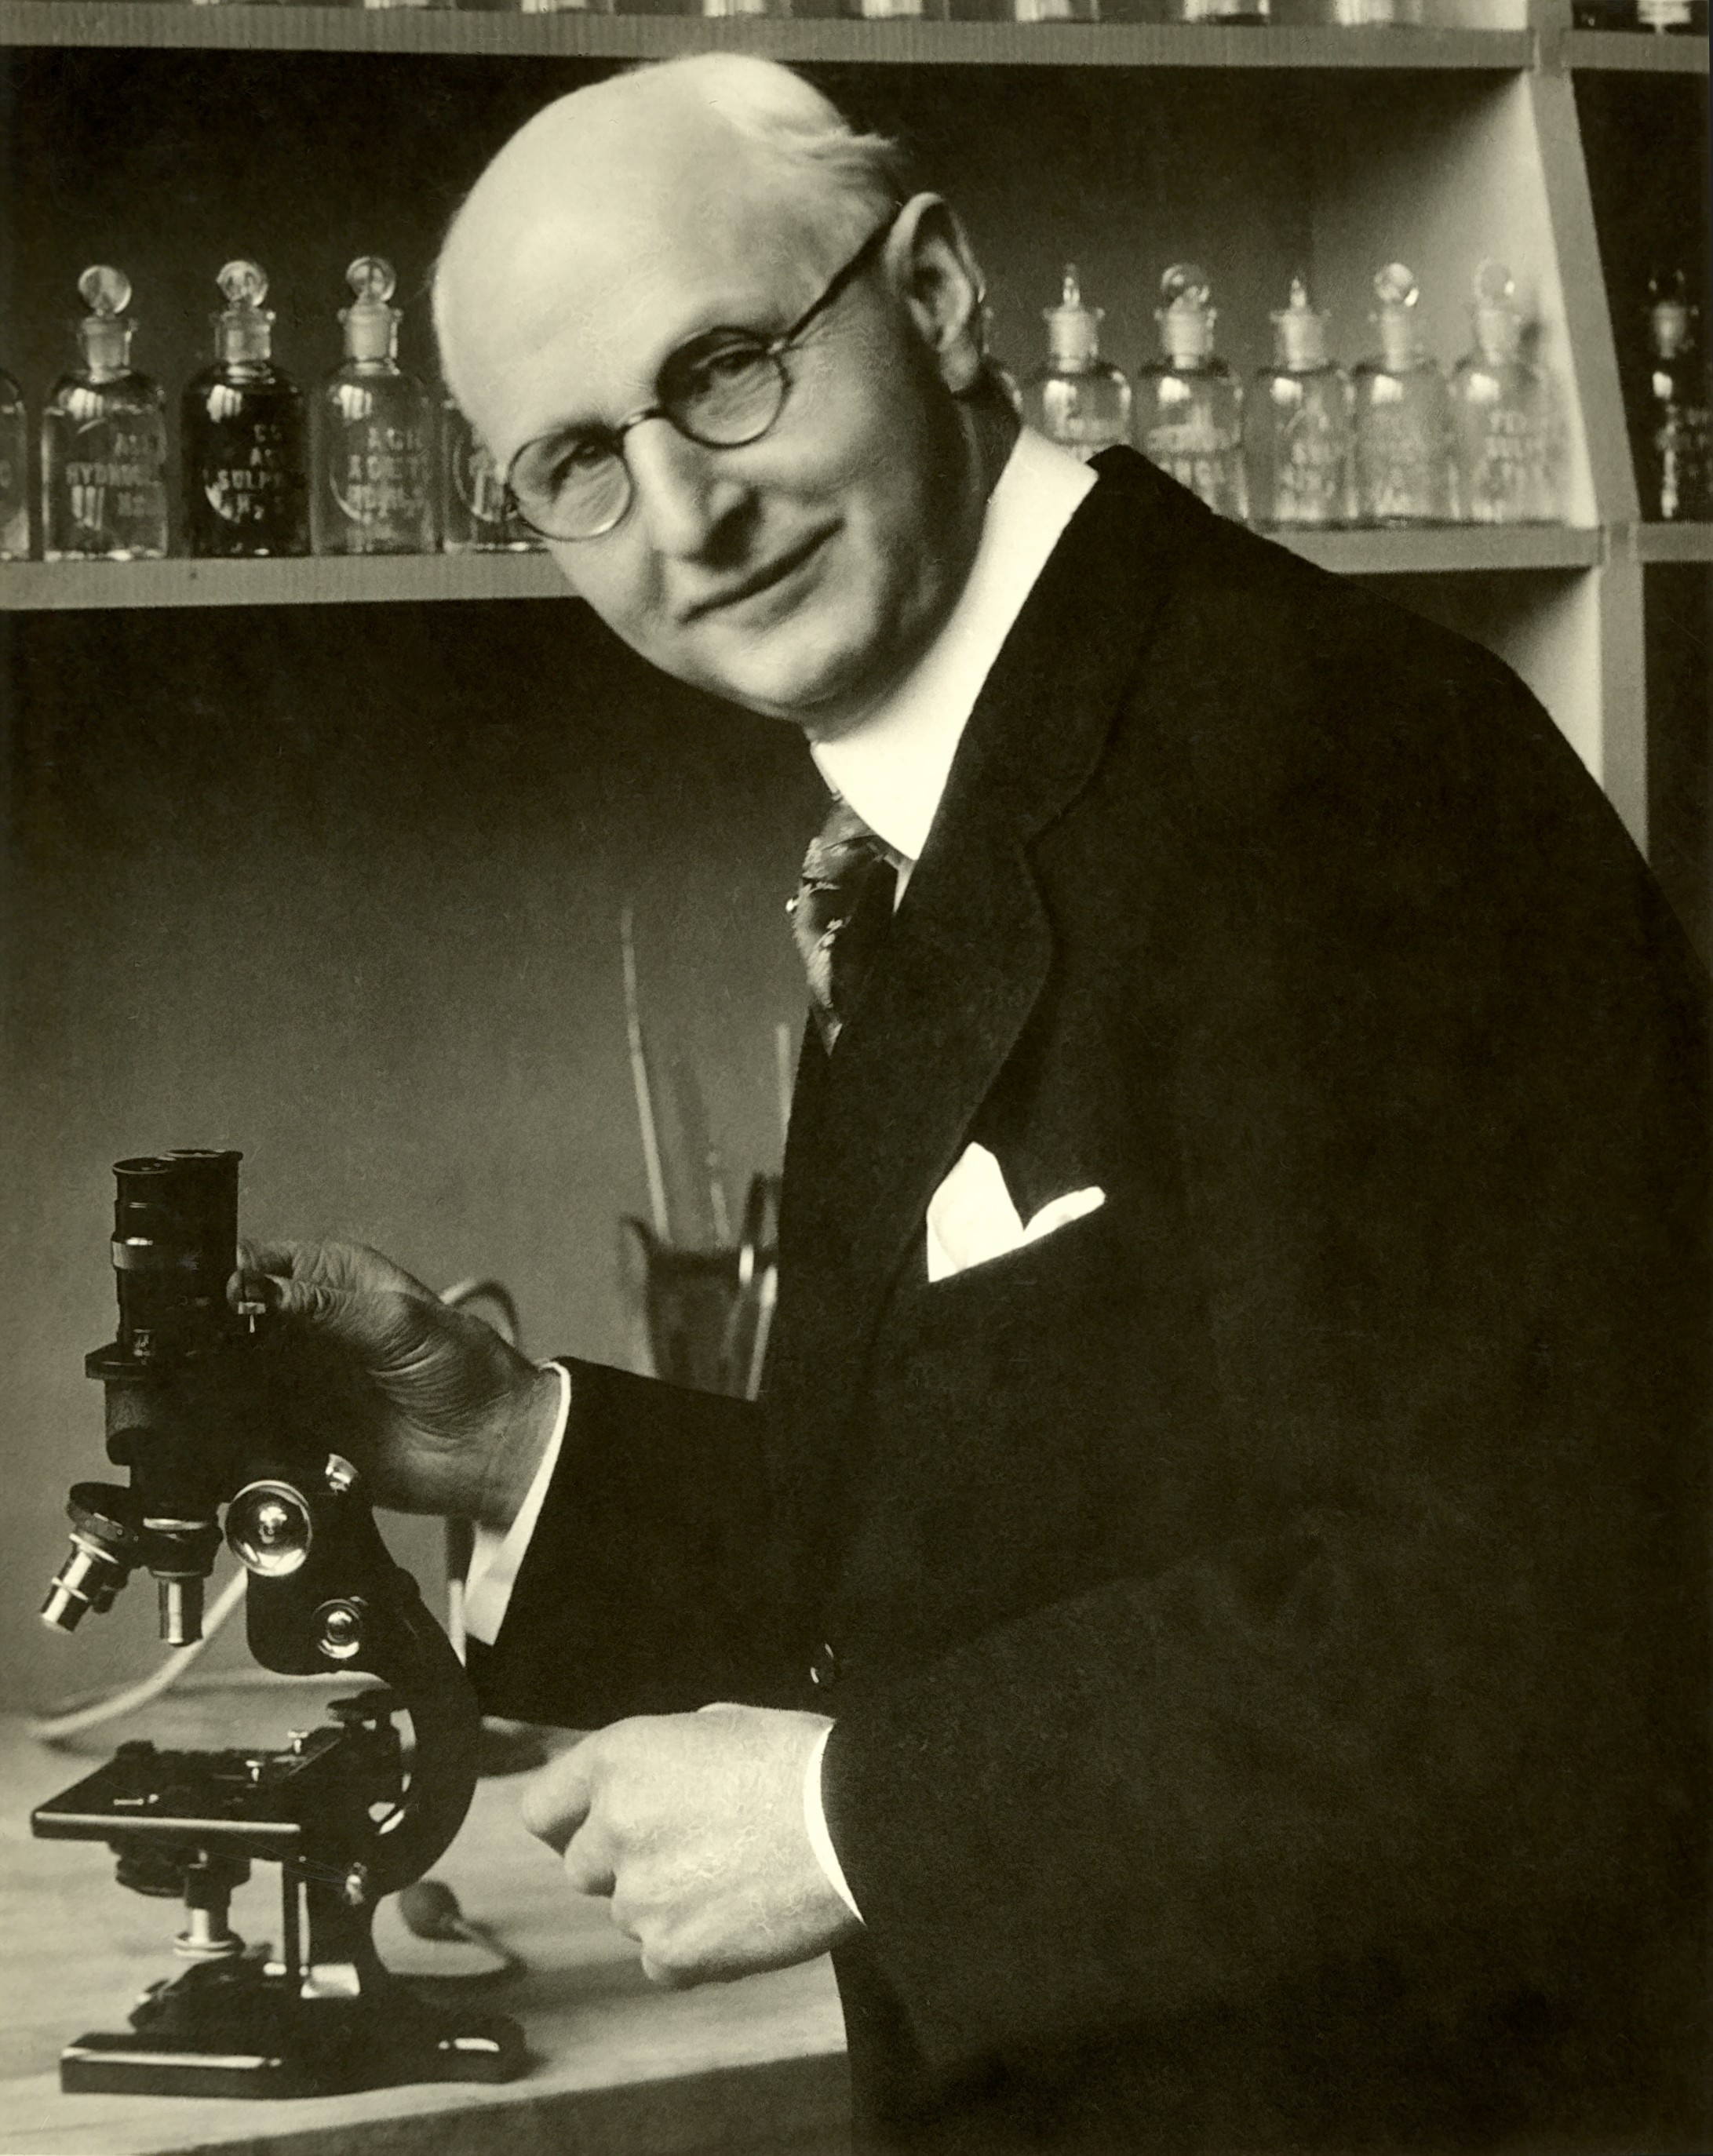 Dr. Weston A. Price with his hand on a microscope